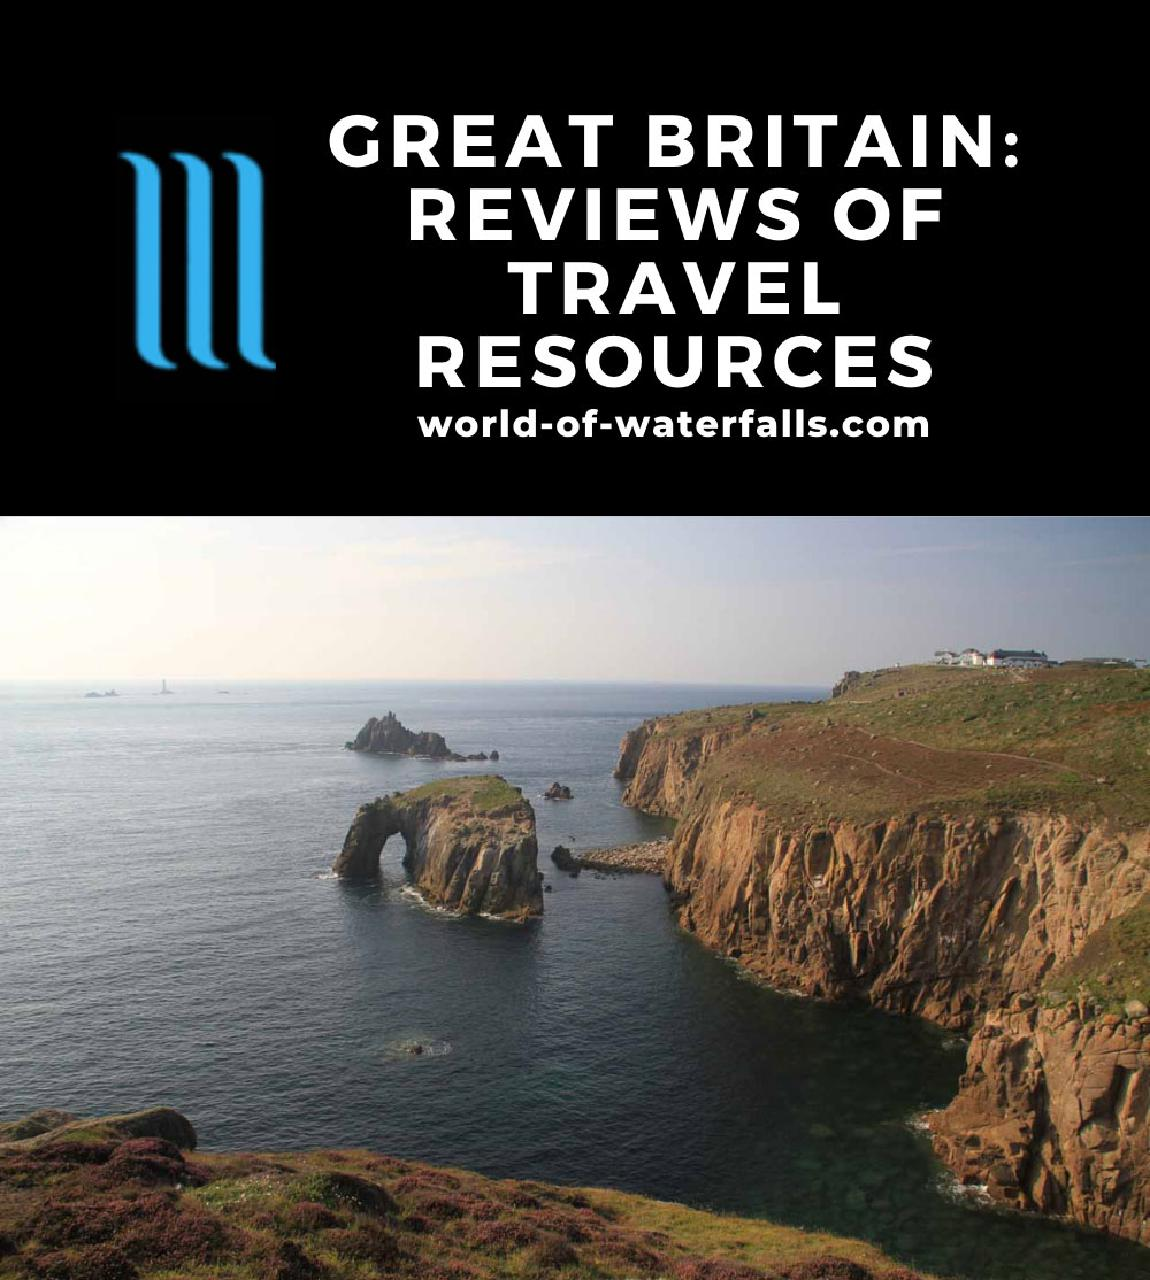 Great Britain: Reviews of Travel Resources